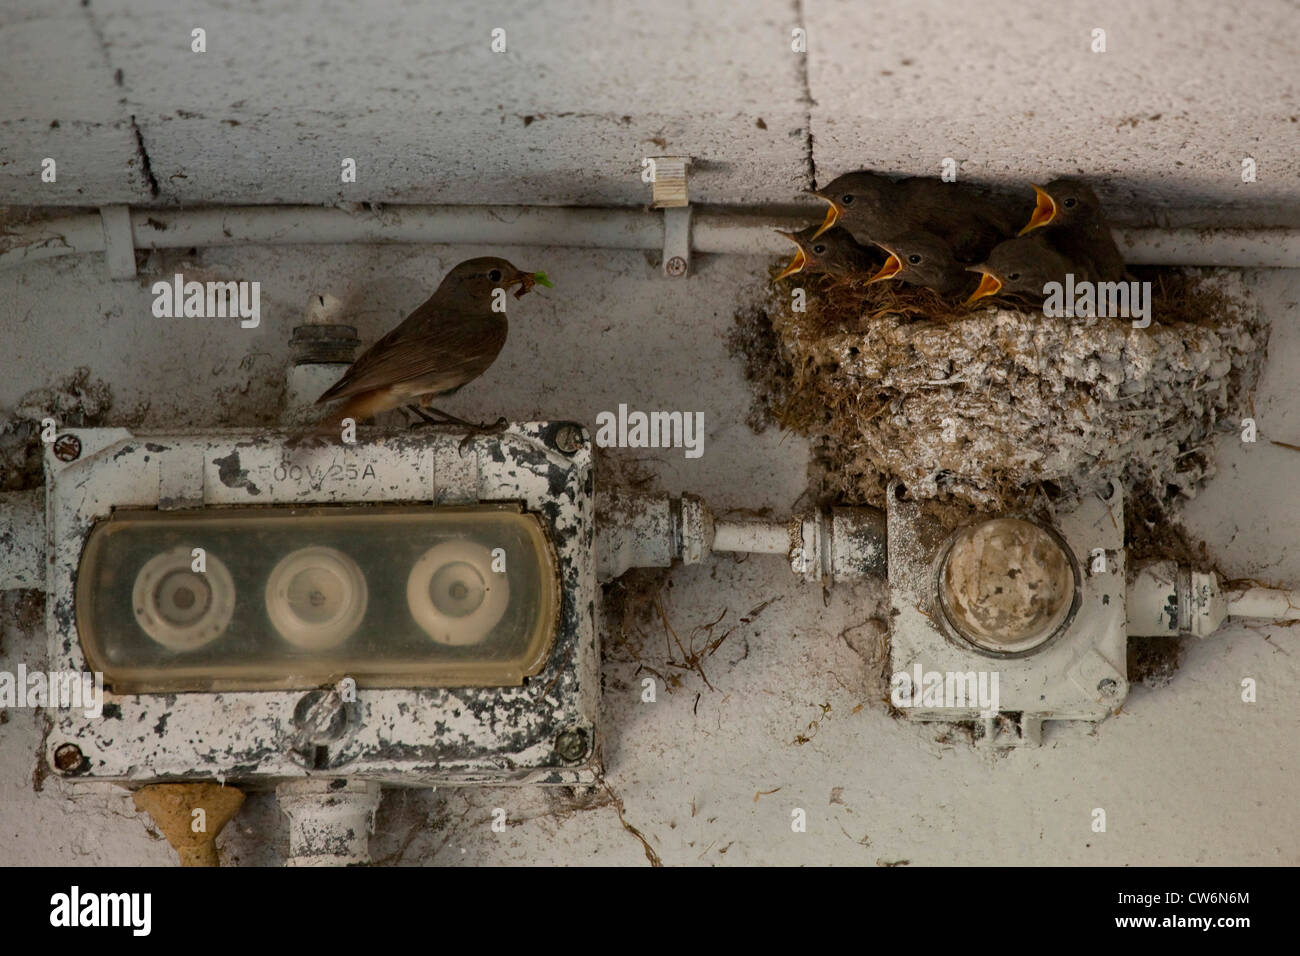 fuse boxes stock photos fuse boxes stock images alamy black redstart phoenicurus ochruros nest full of begging young birdon a fuse box